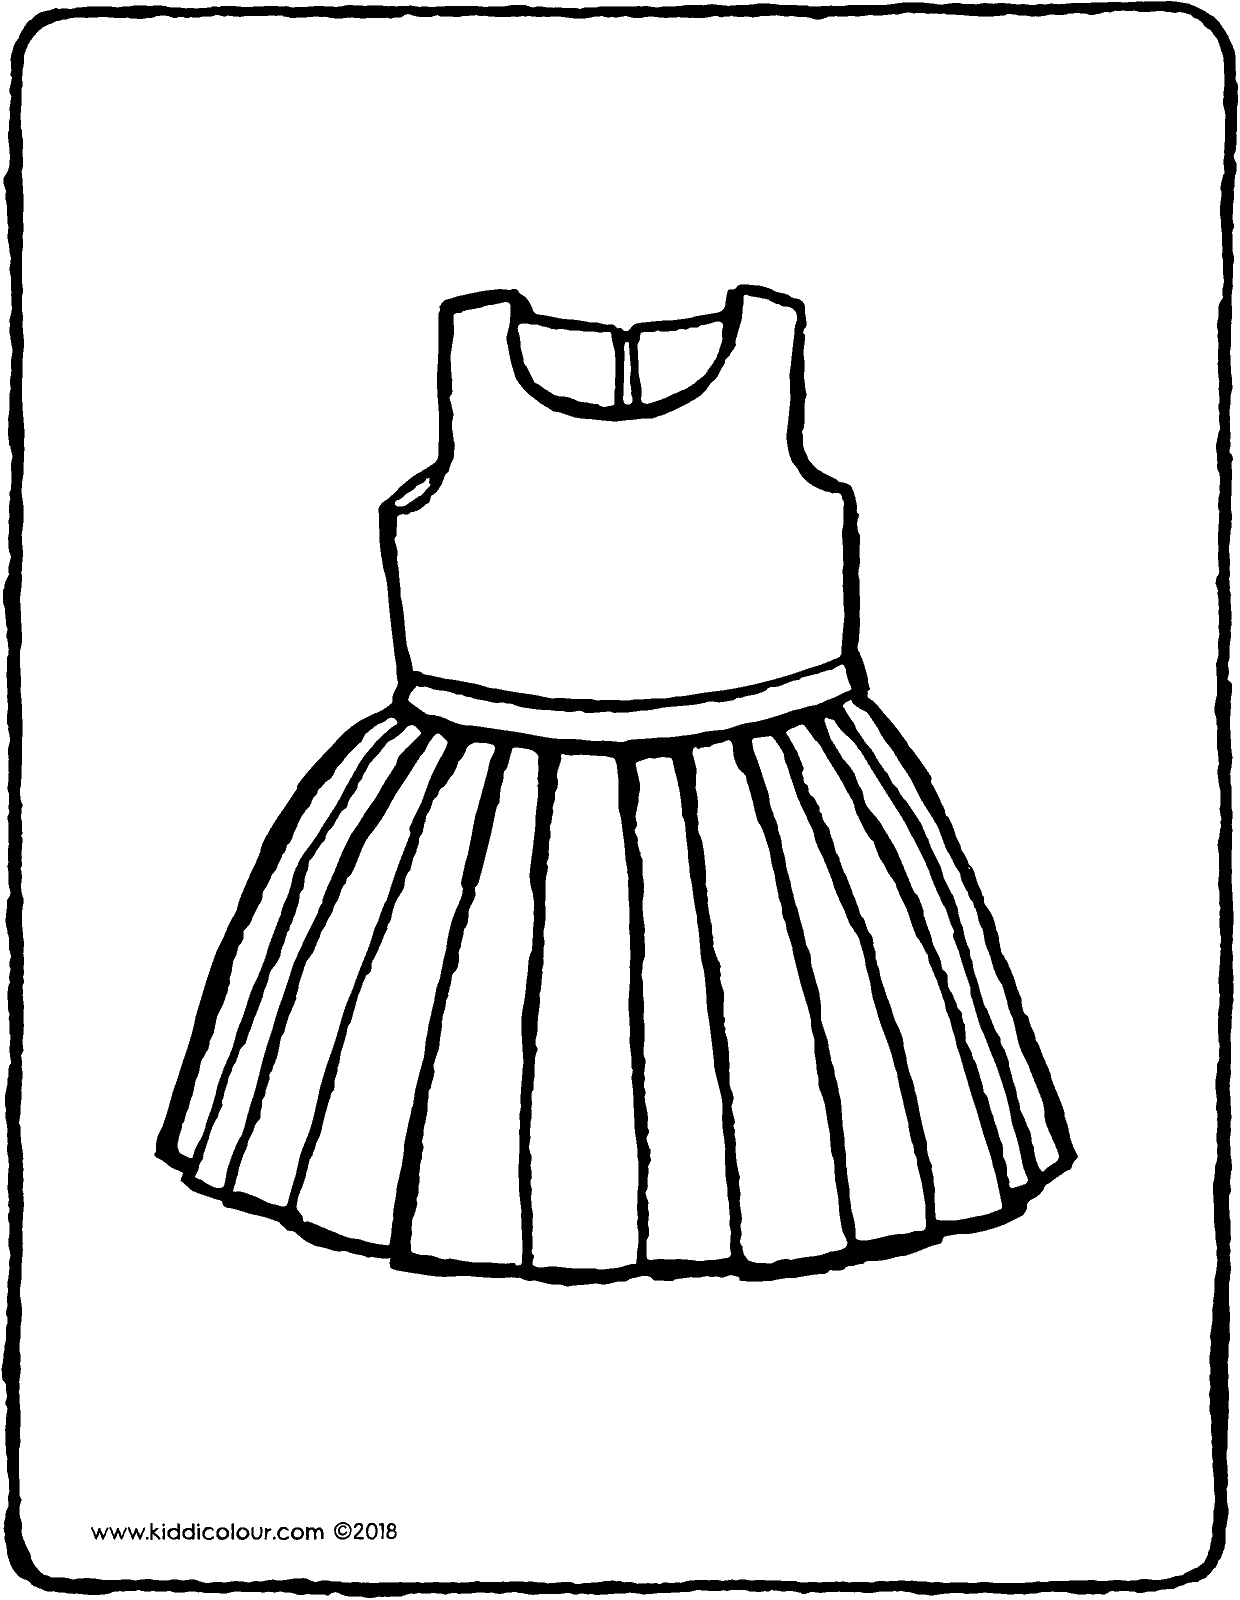 dress coloring pictures printable formal dress coloring page mama likes this dress pictures coloring